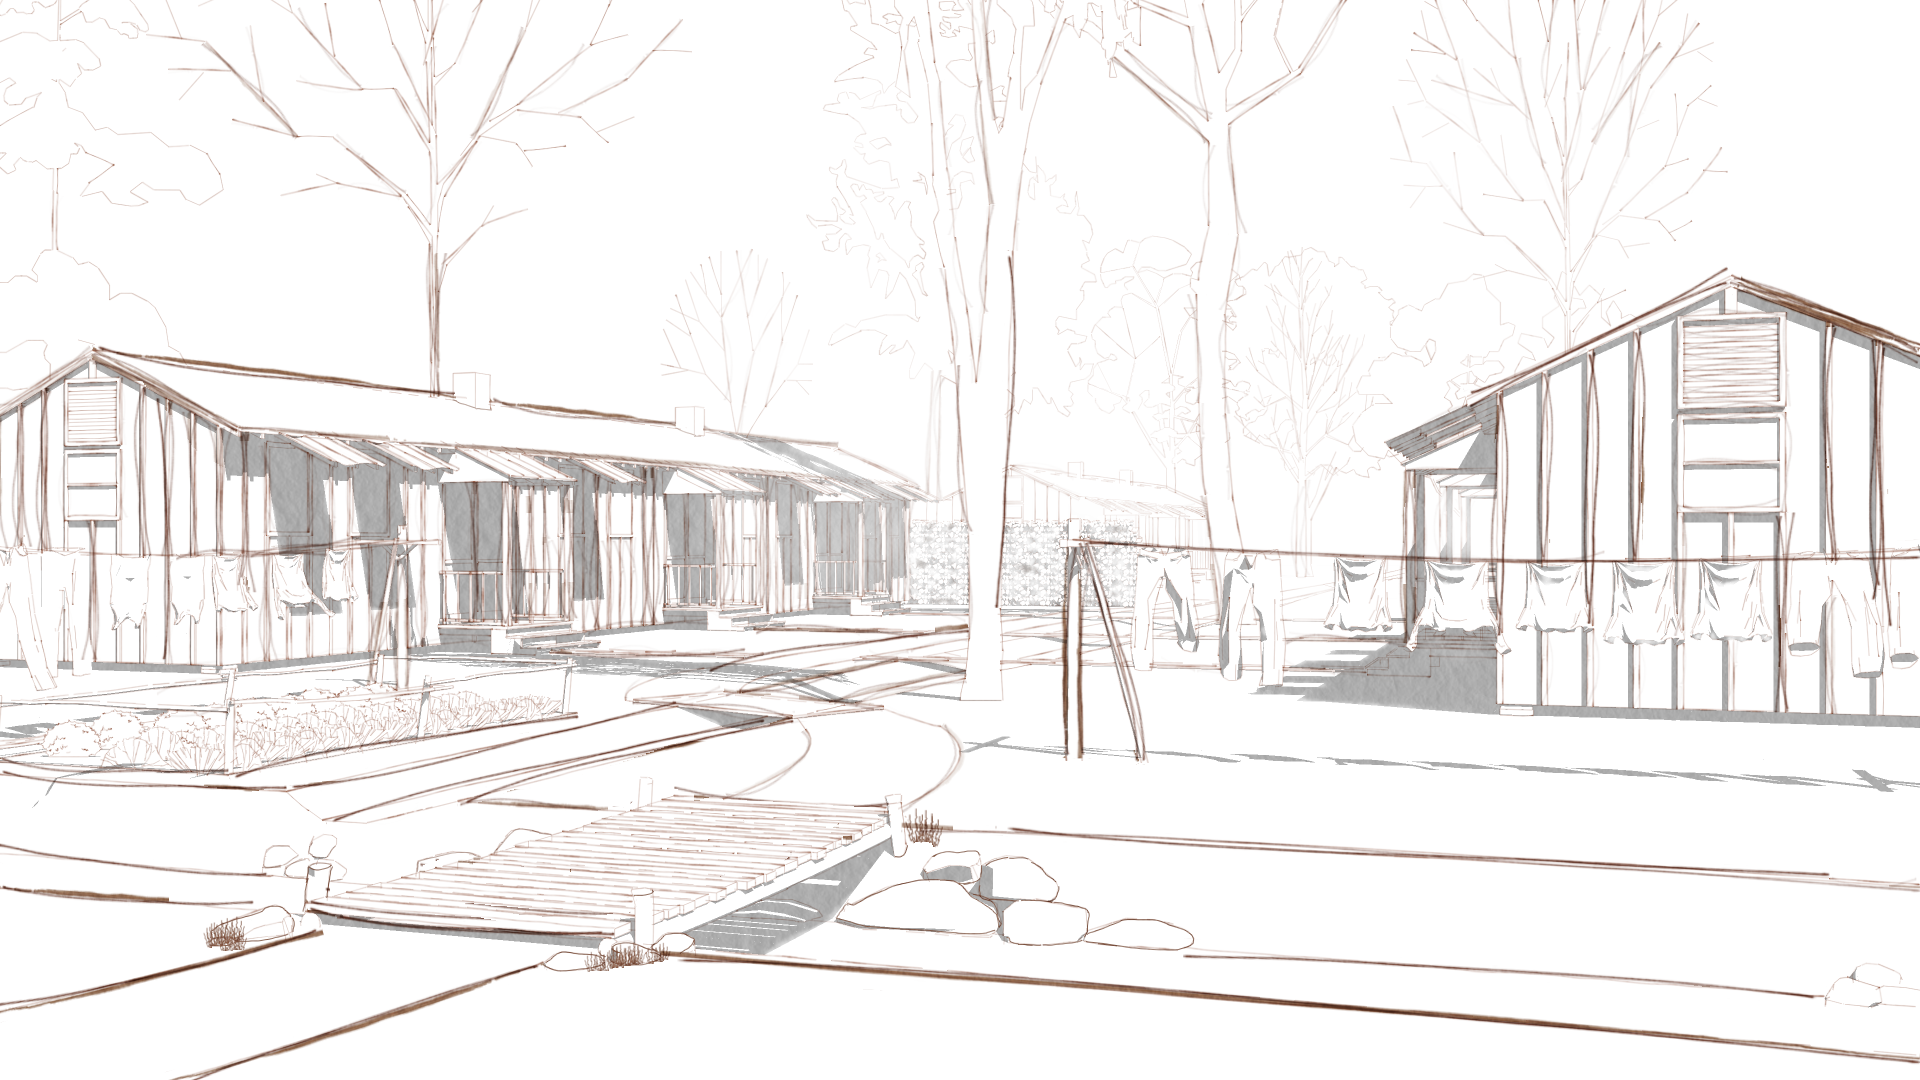 Architectural Illustration of a section of the Rohwer Japanese American Relocation Center (Glenn Gardiner, Center for Digital Initiatives)